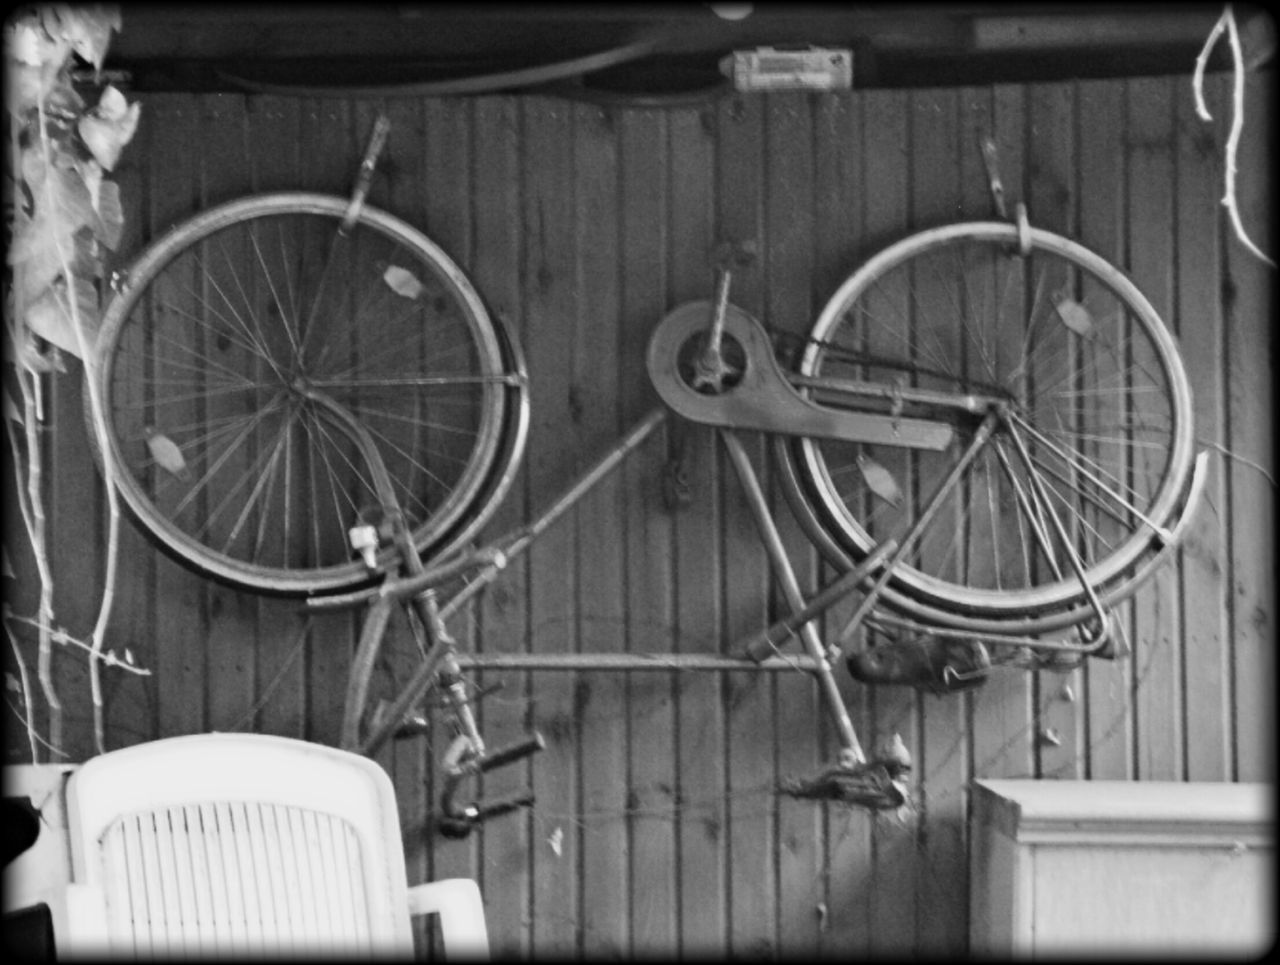 Bicycle Hanging Out Garage Blackandwhite Photography Outdoor Photography No People